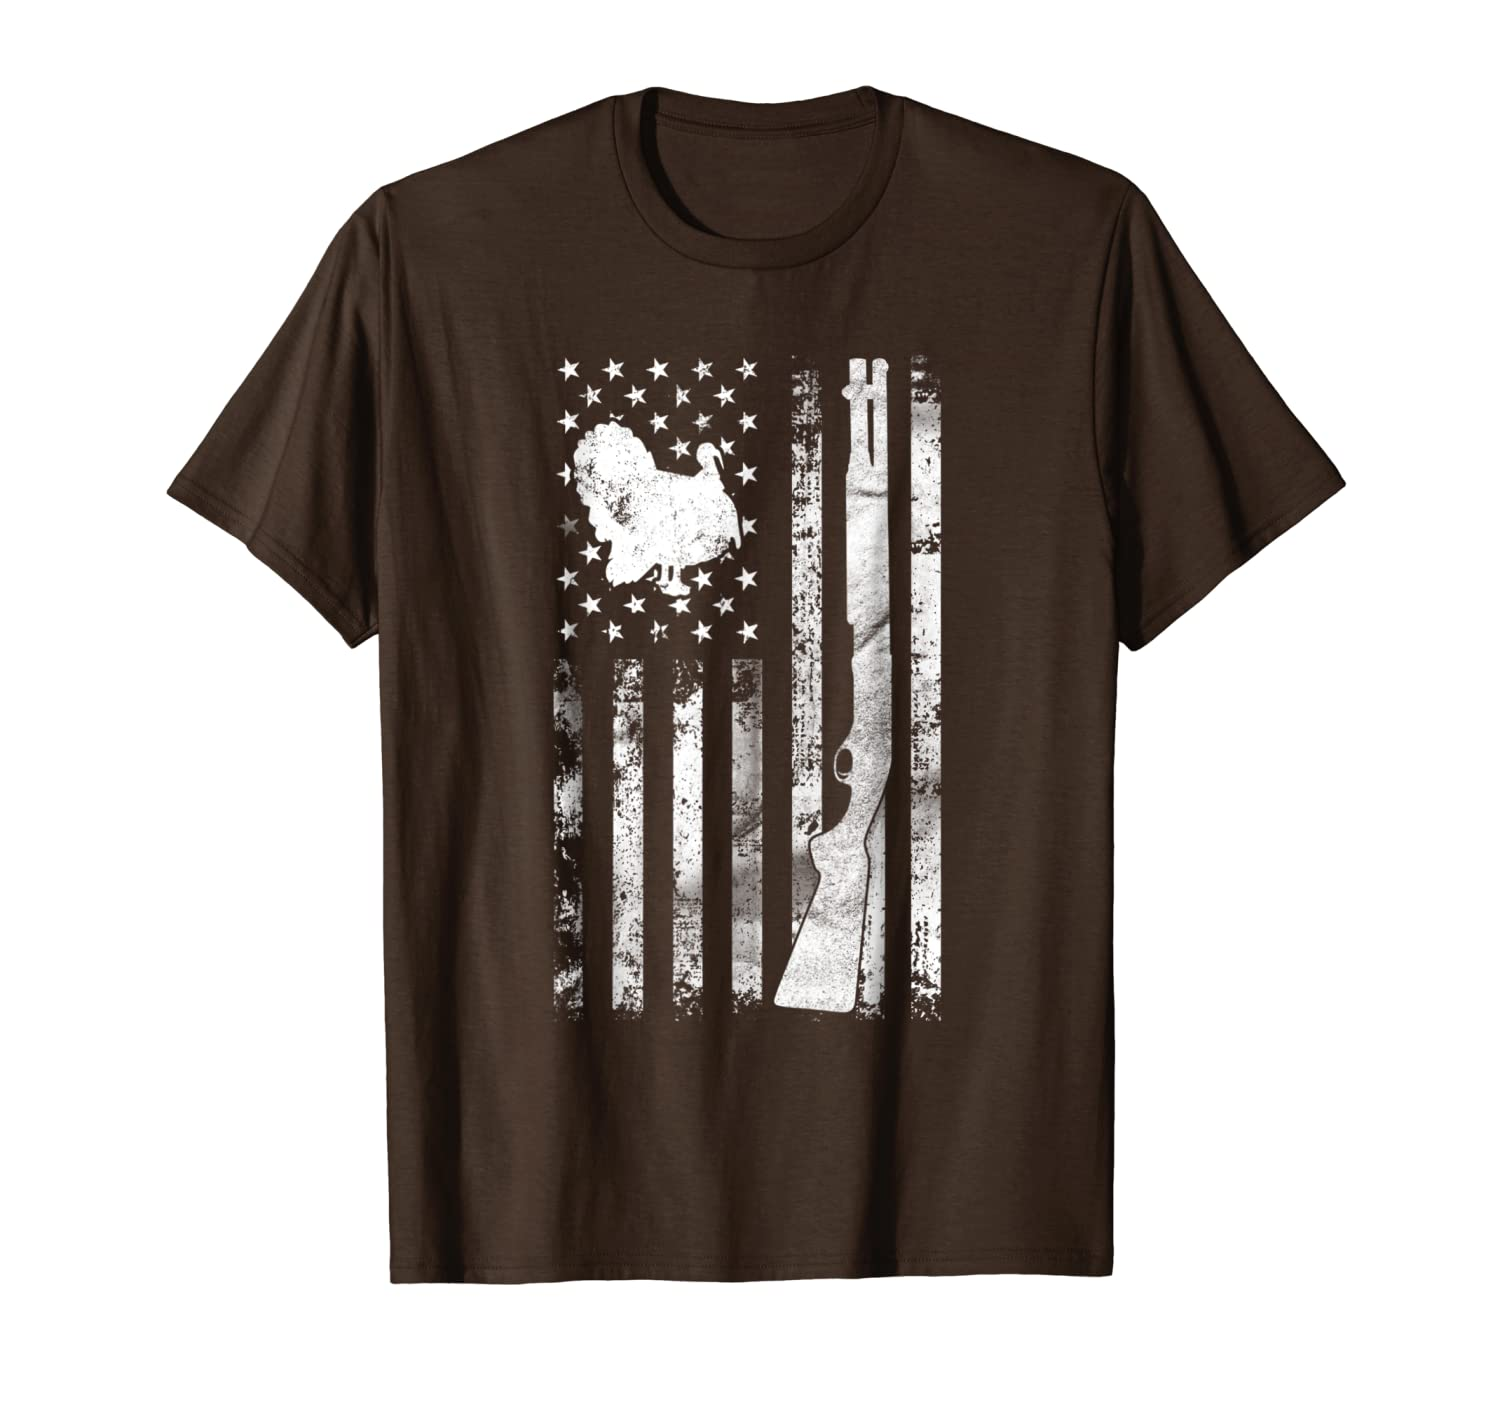 Turkey Hunting Flag T-Shirt For Hunters  Hunting Gifts Unisex Tshirt